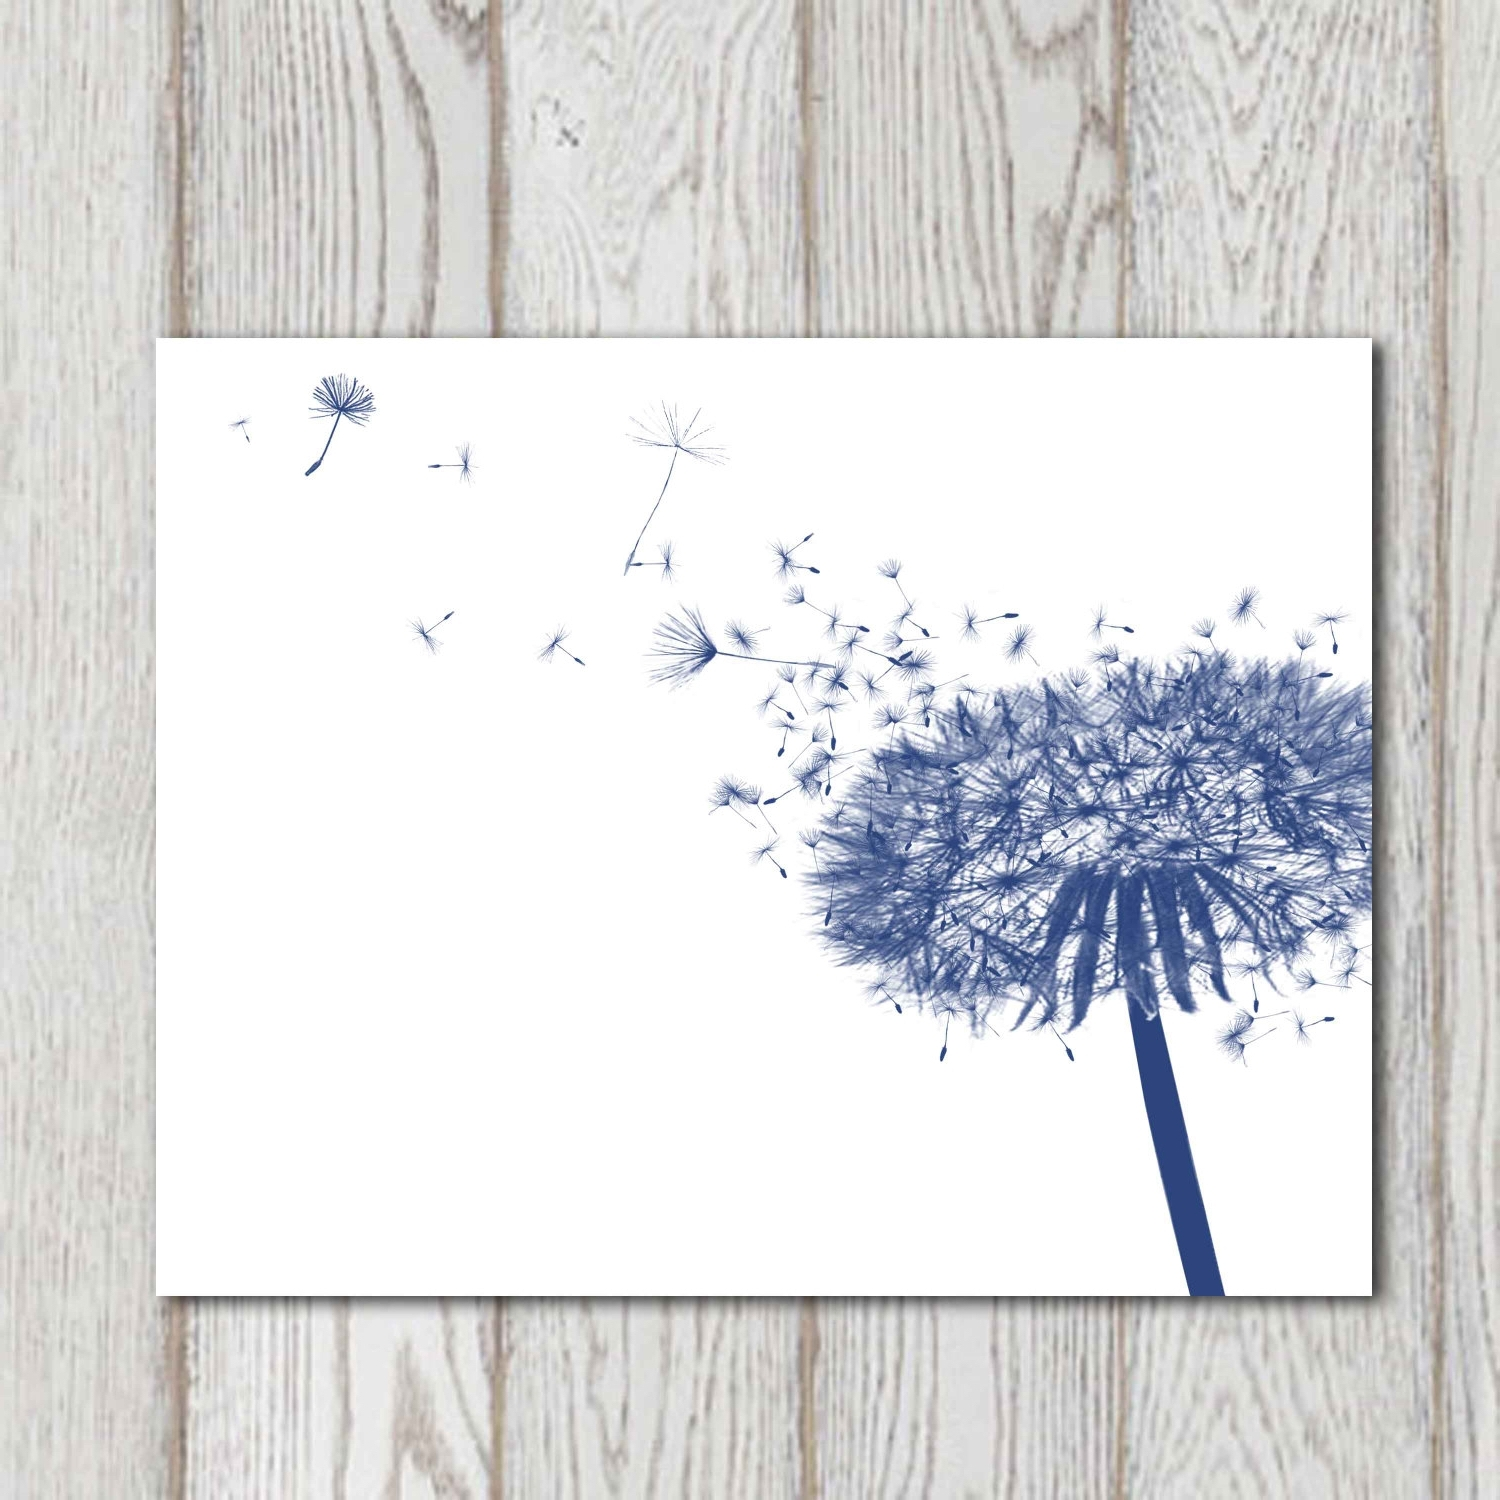 Well Known Dandelion Decor Print Navy Blue Home Decor Navy Bedroom Decor Regarding Navy Blue Wall Art (View 15 of 15)